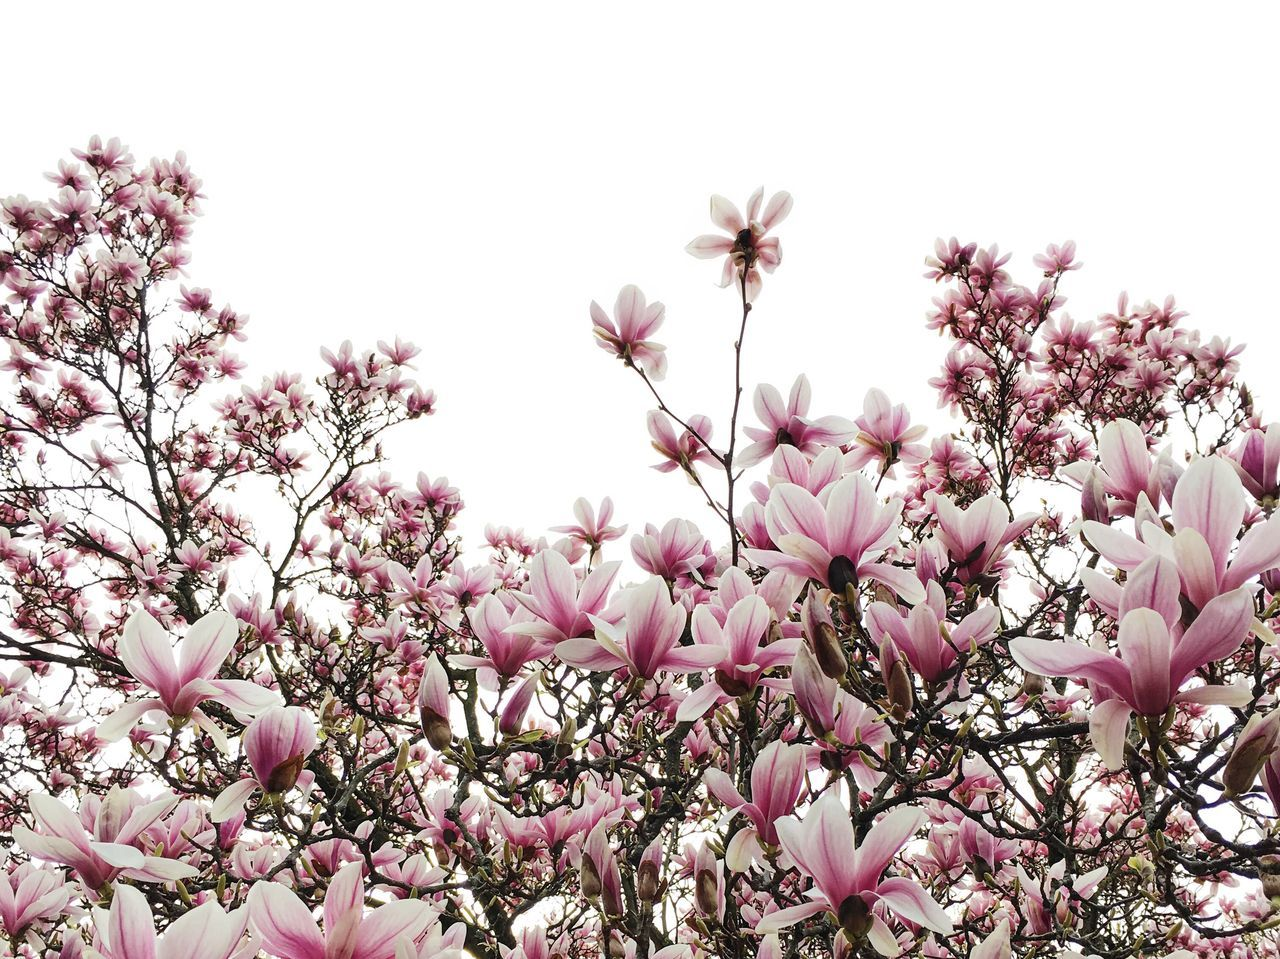 Beautiful stock photos of magnolie, flower, fragility, low angle view, growth